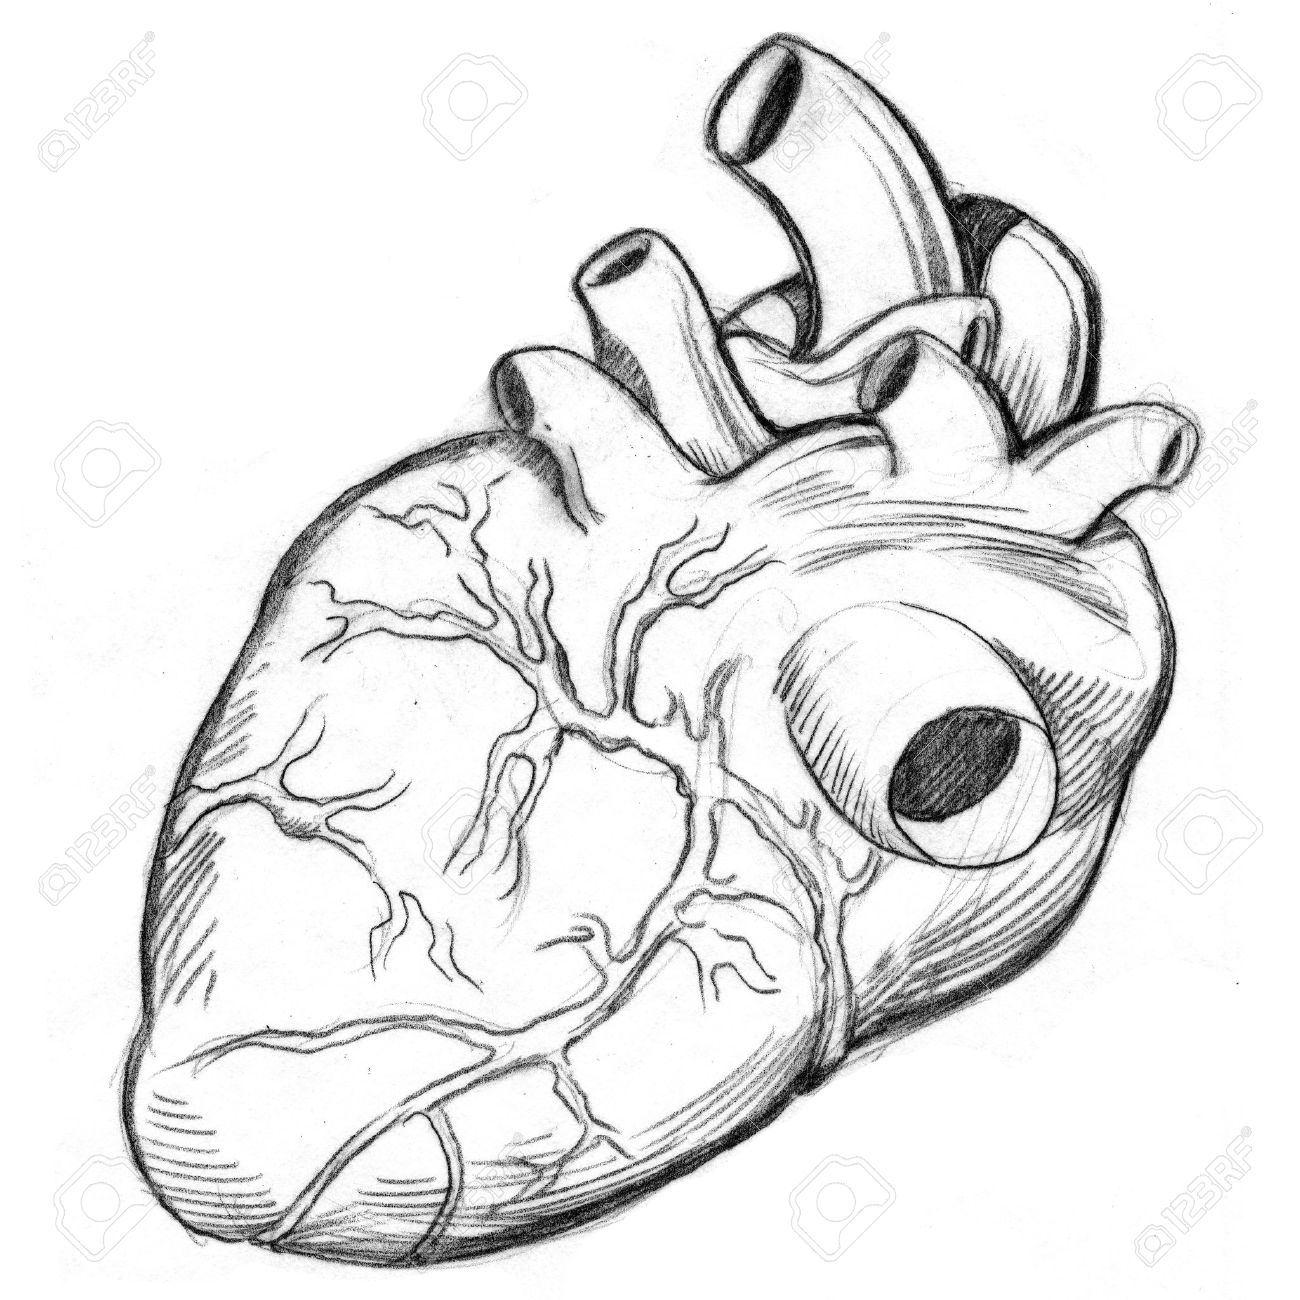 an image of a human heart drawing. stock photo, picture and, Muscles